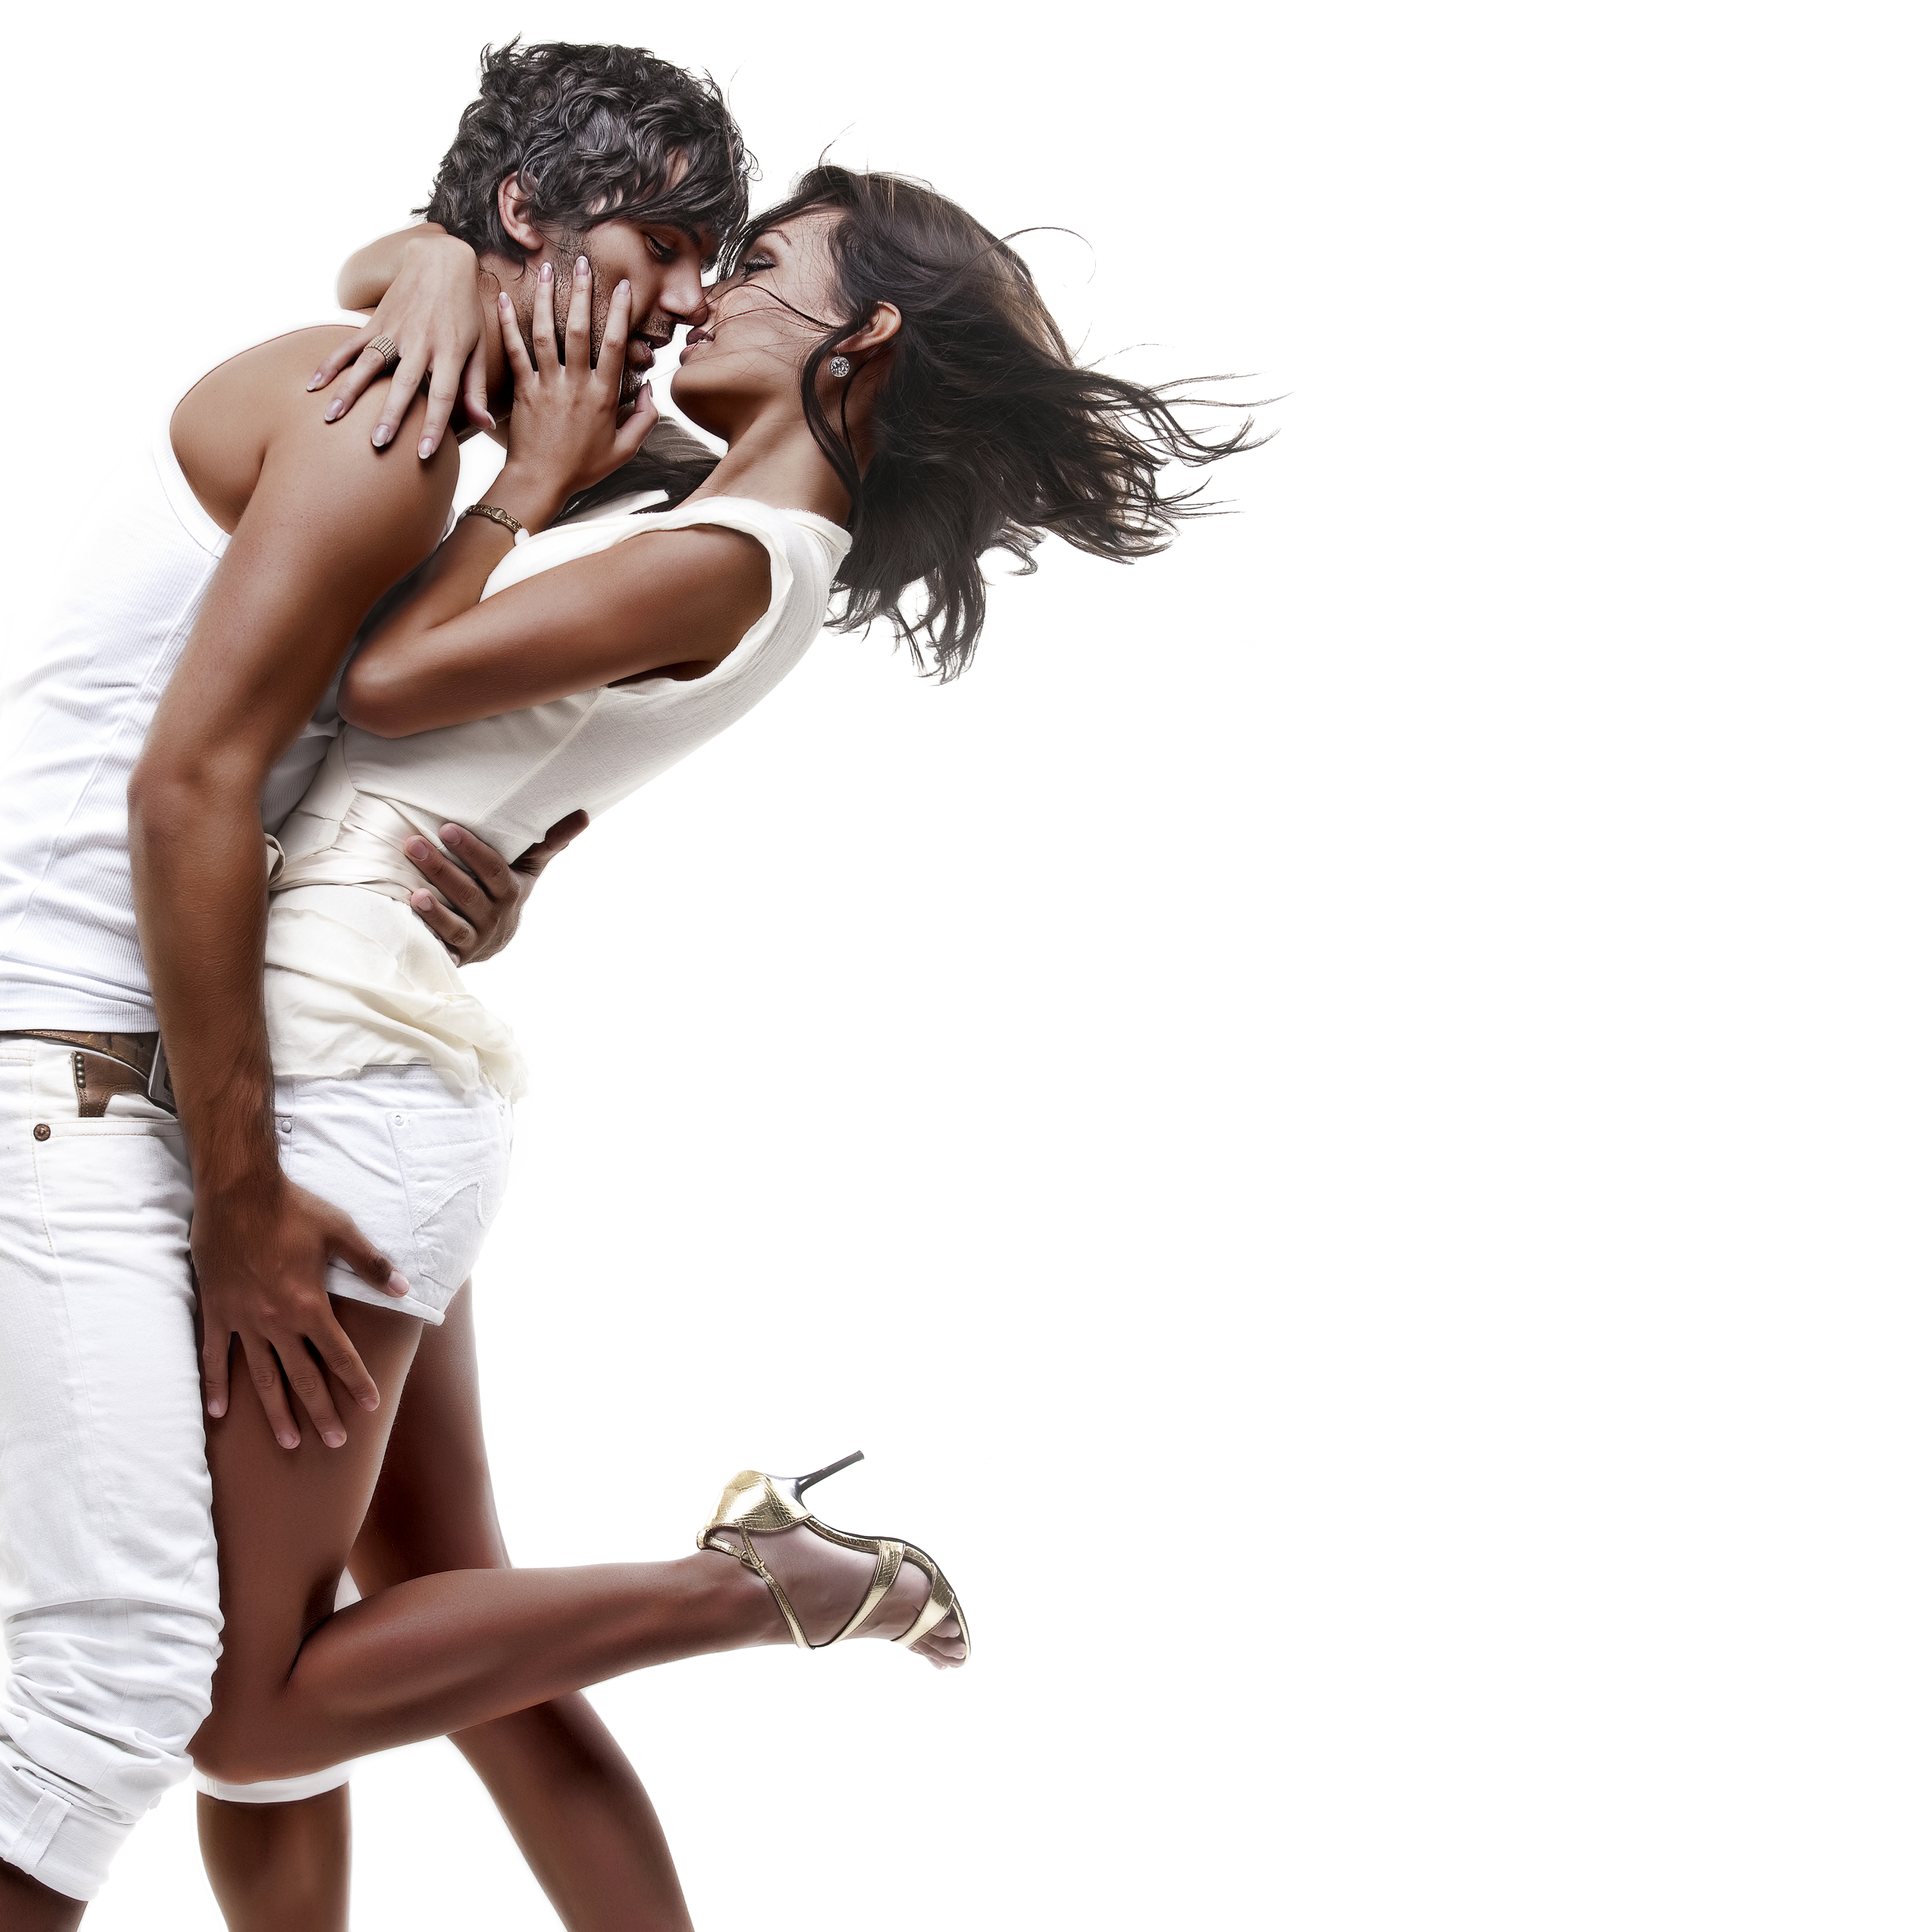 2011 Man and Woman on White.jpg